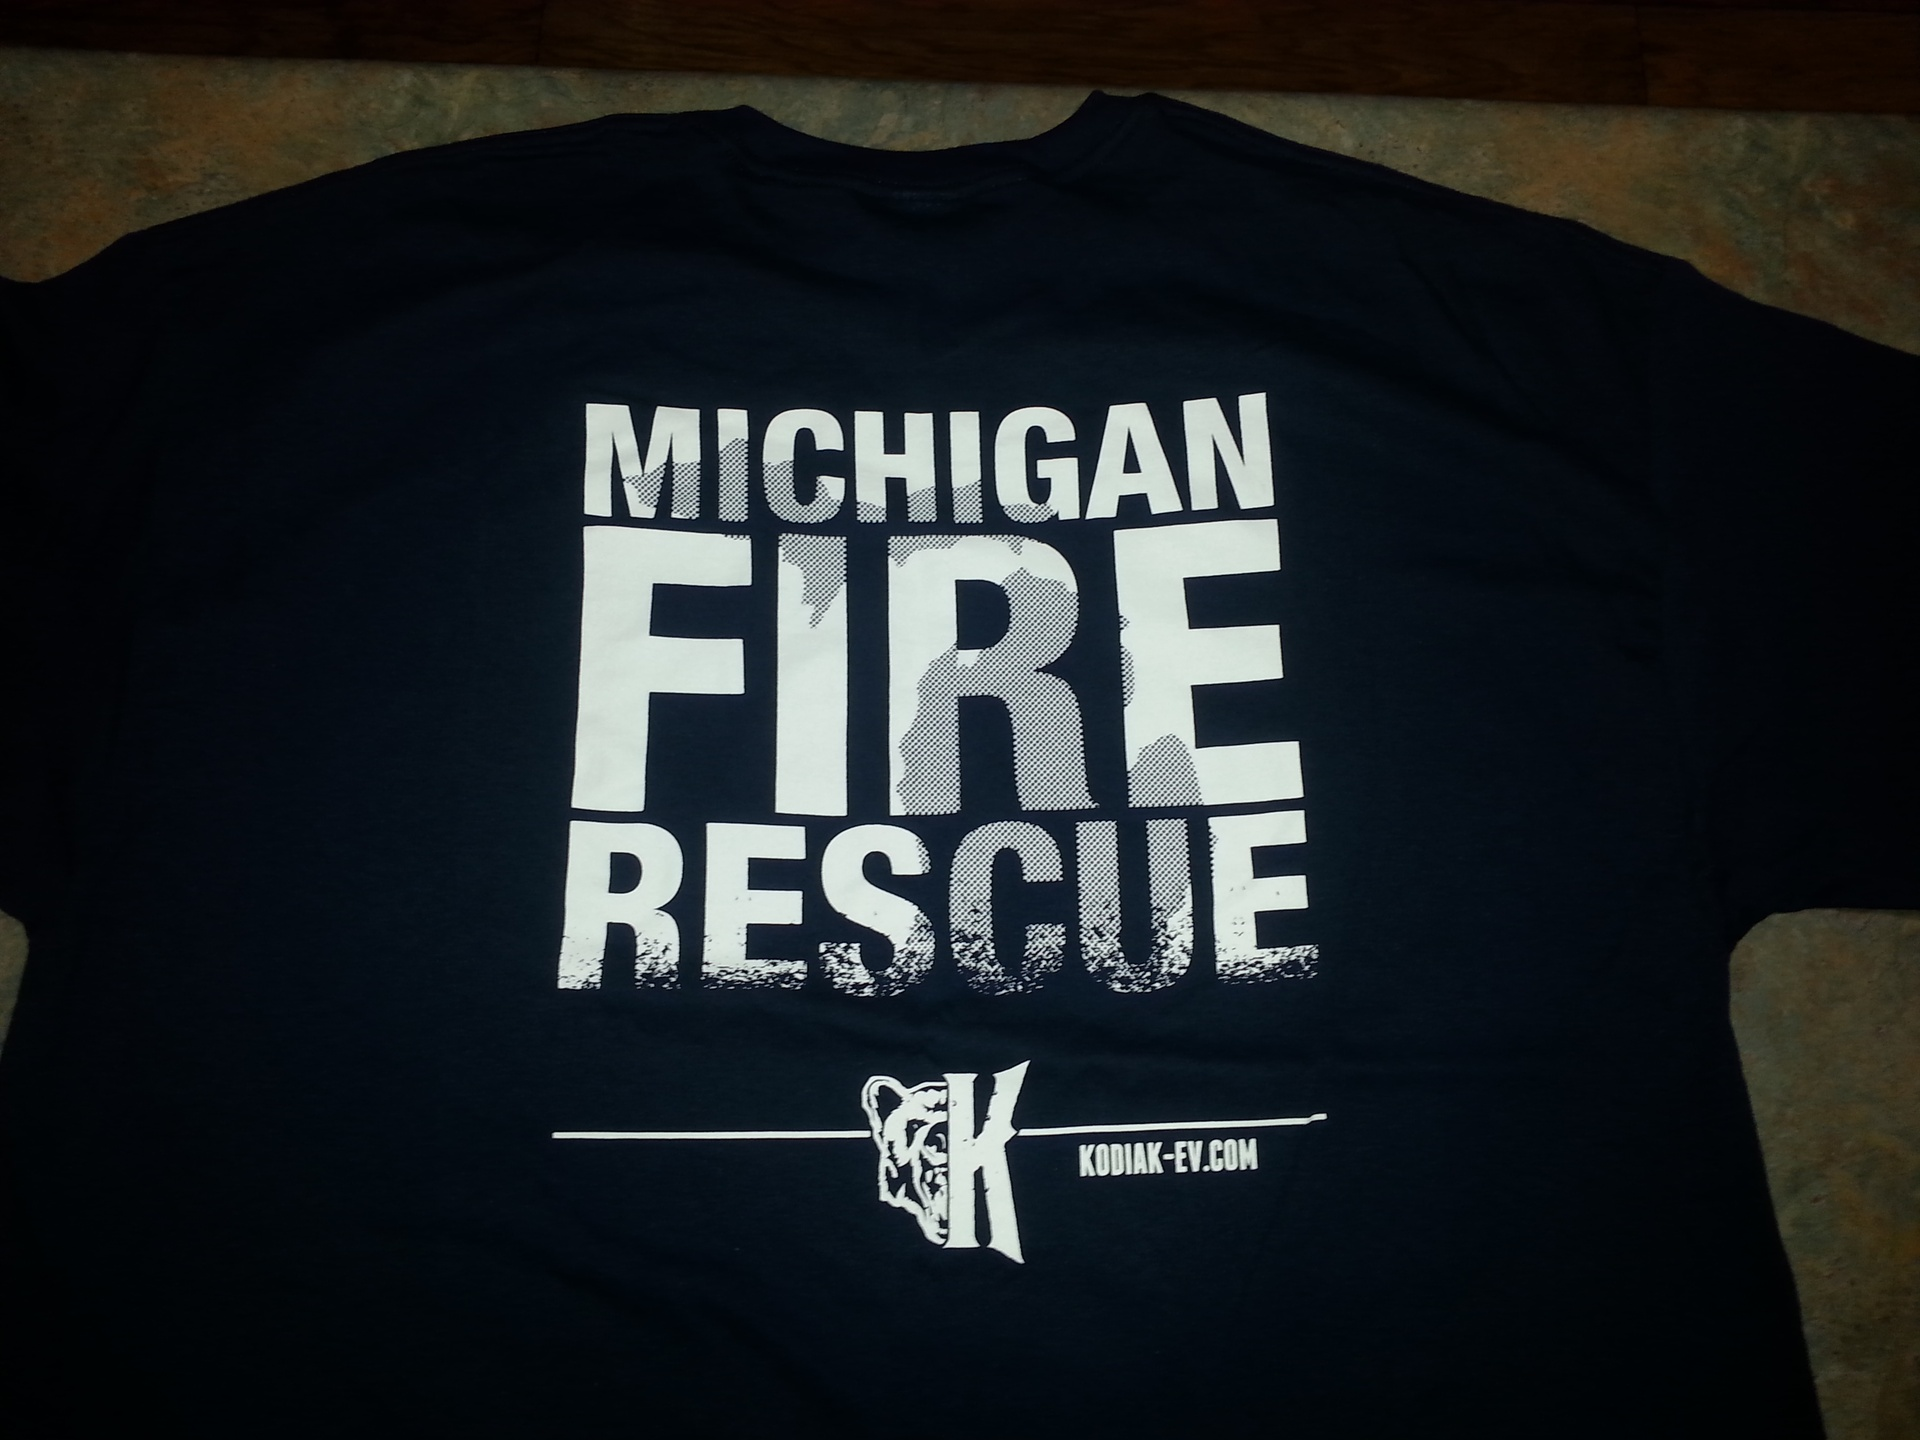 Michigan Fire Rescue